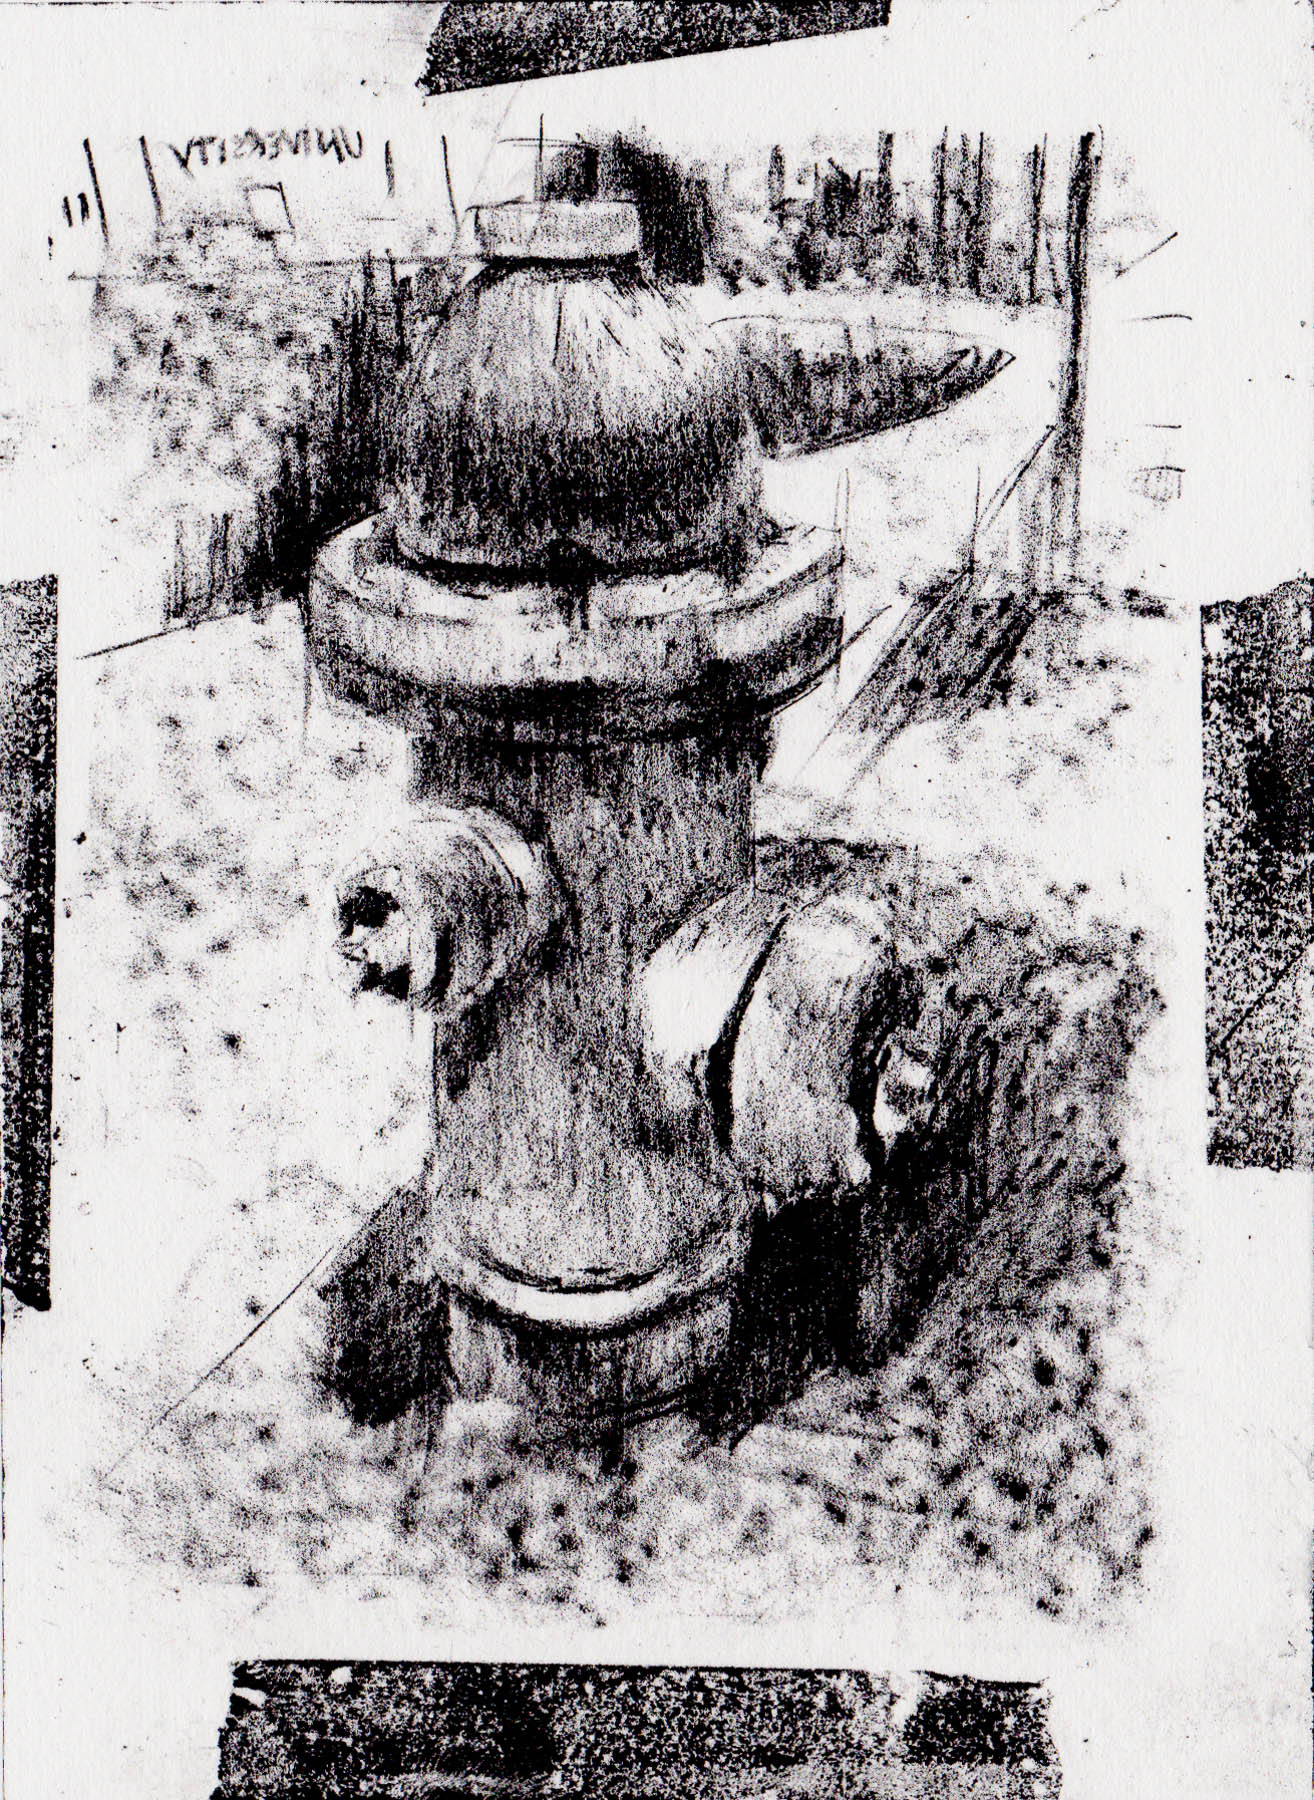 Hydrant, Lithograph, Ink on Paper, 6 x 9 inches